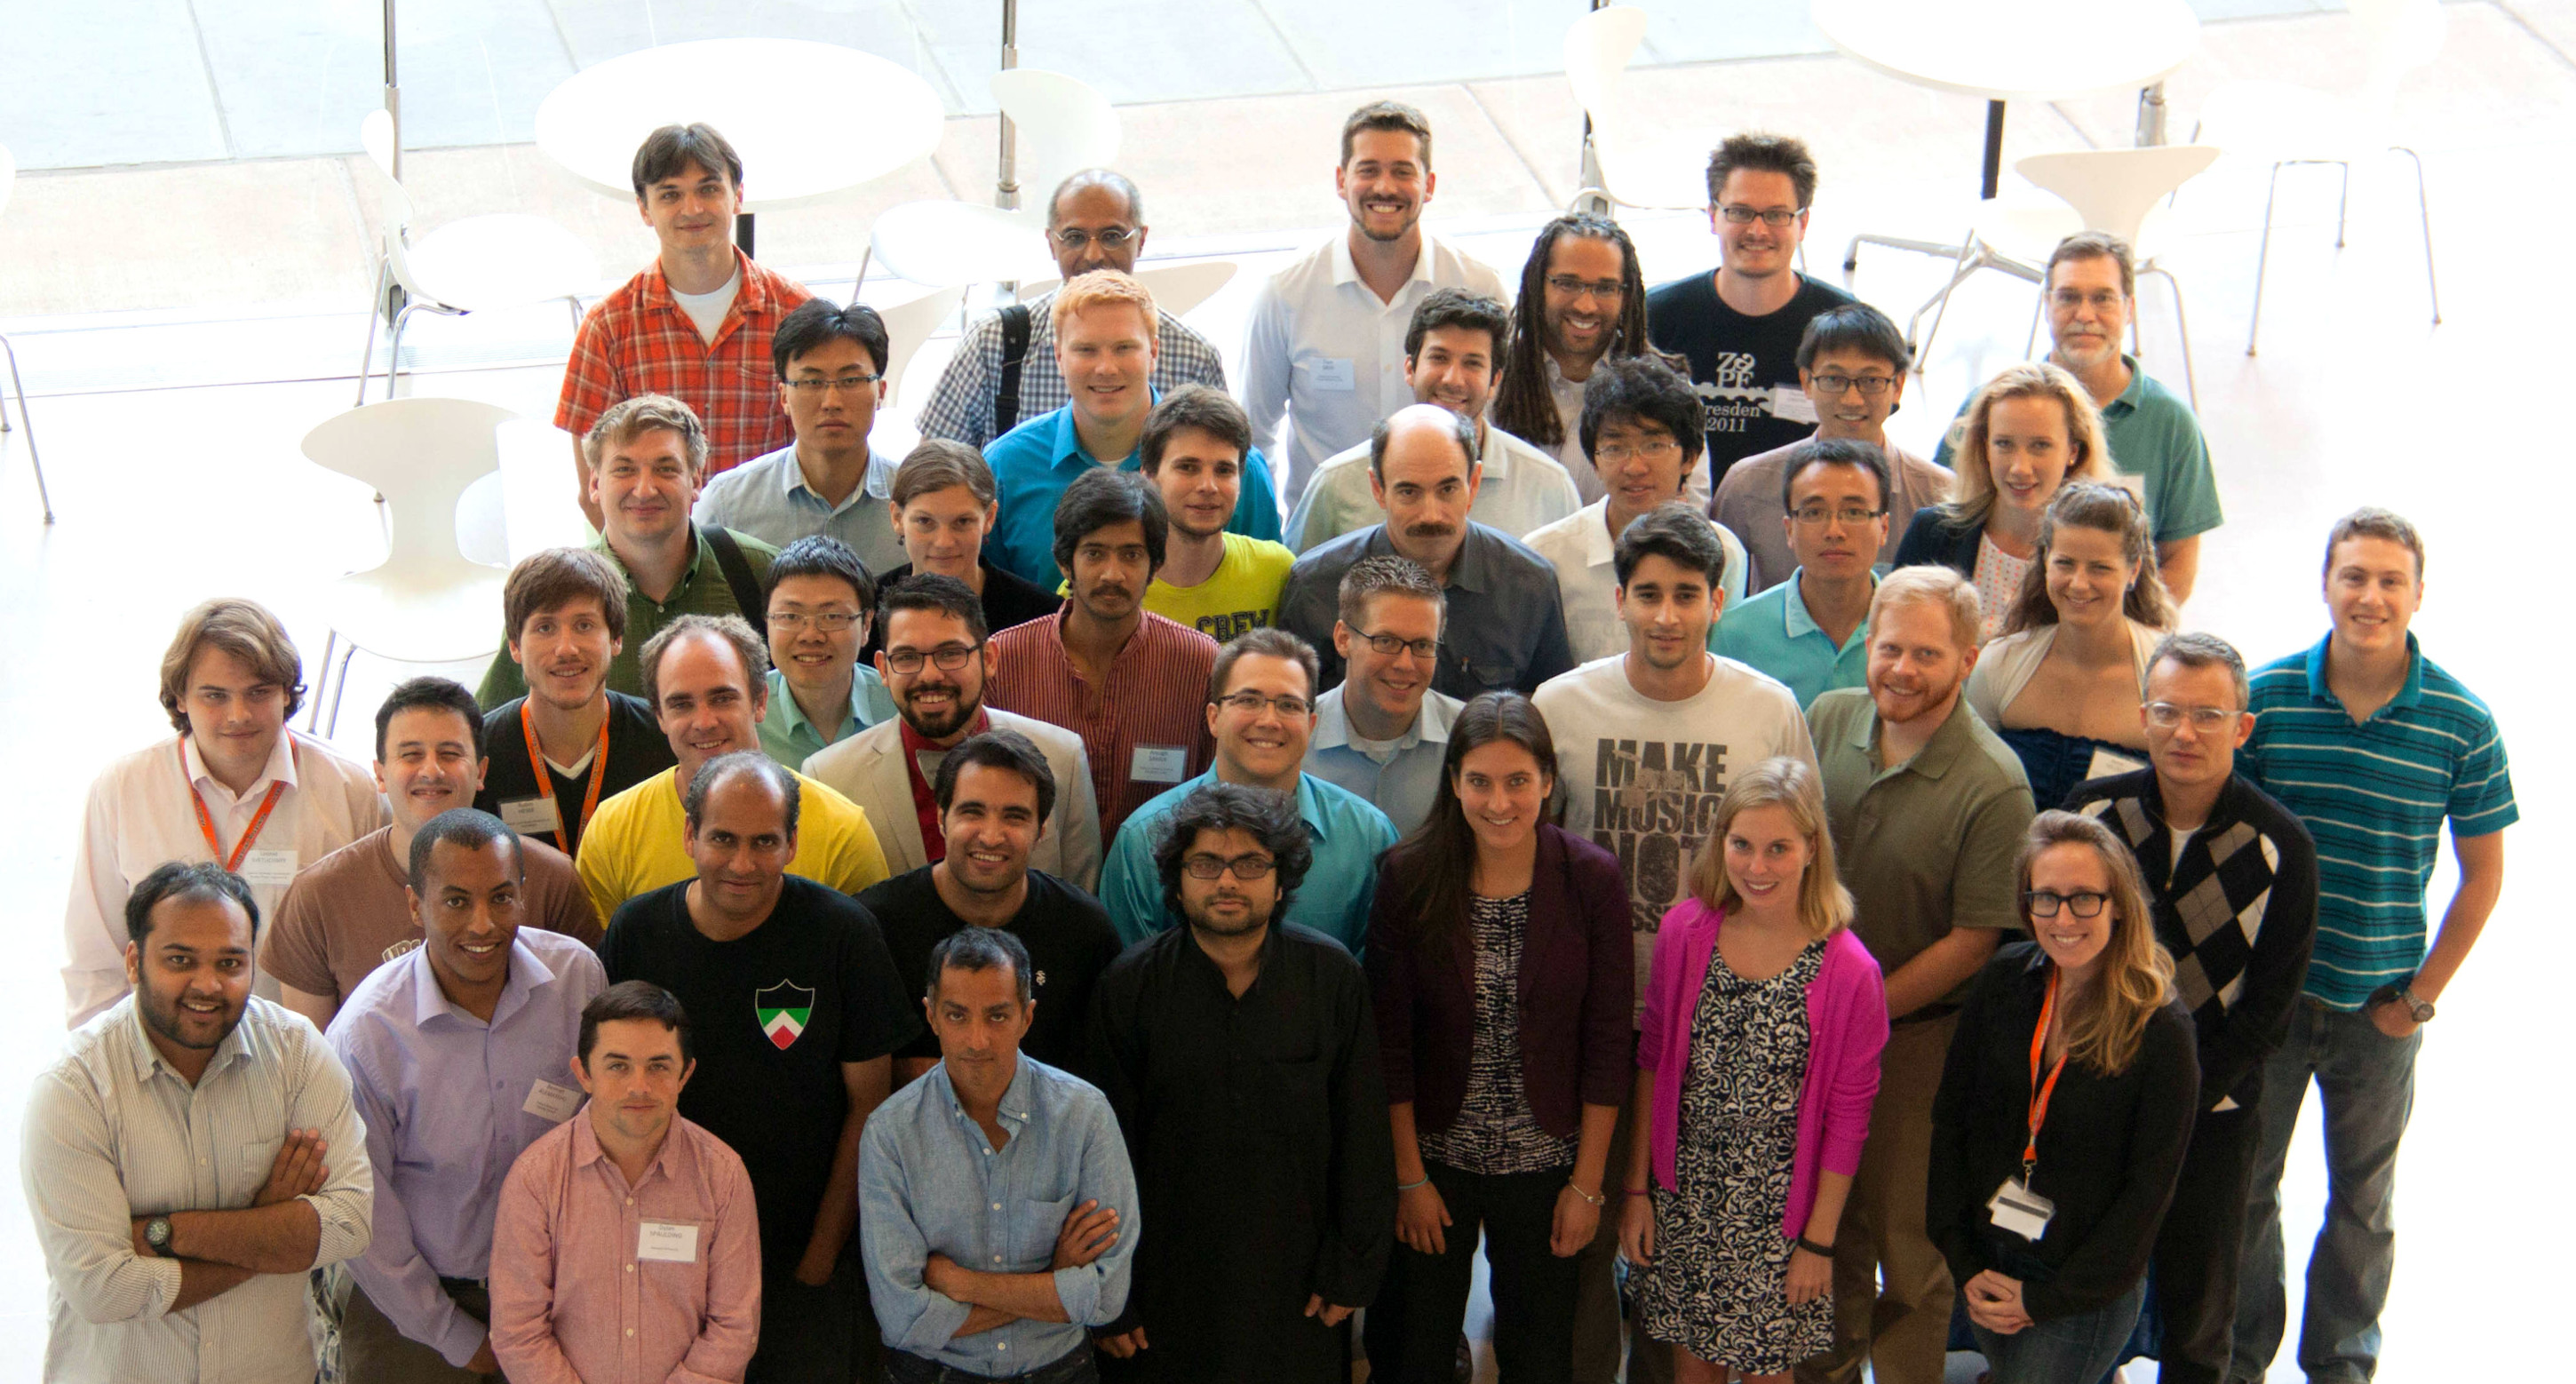 Participants from the 2014 UCS Summer Symposium on Science and World Affairs